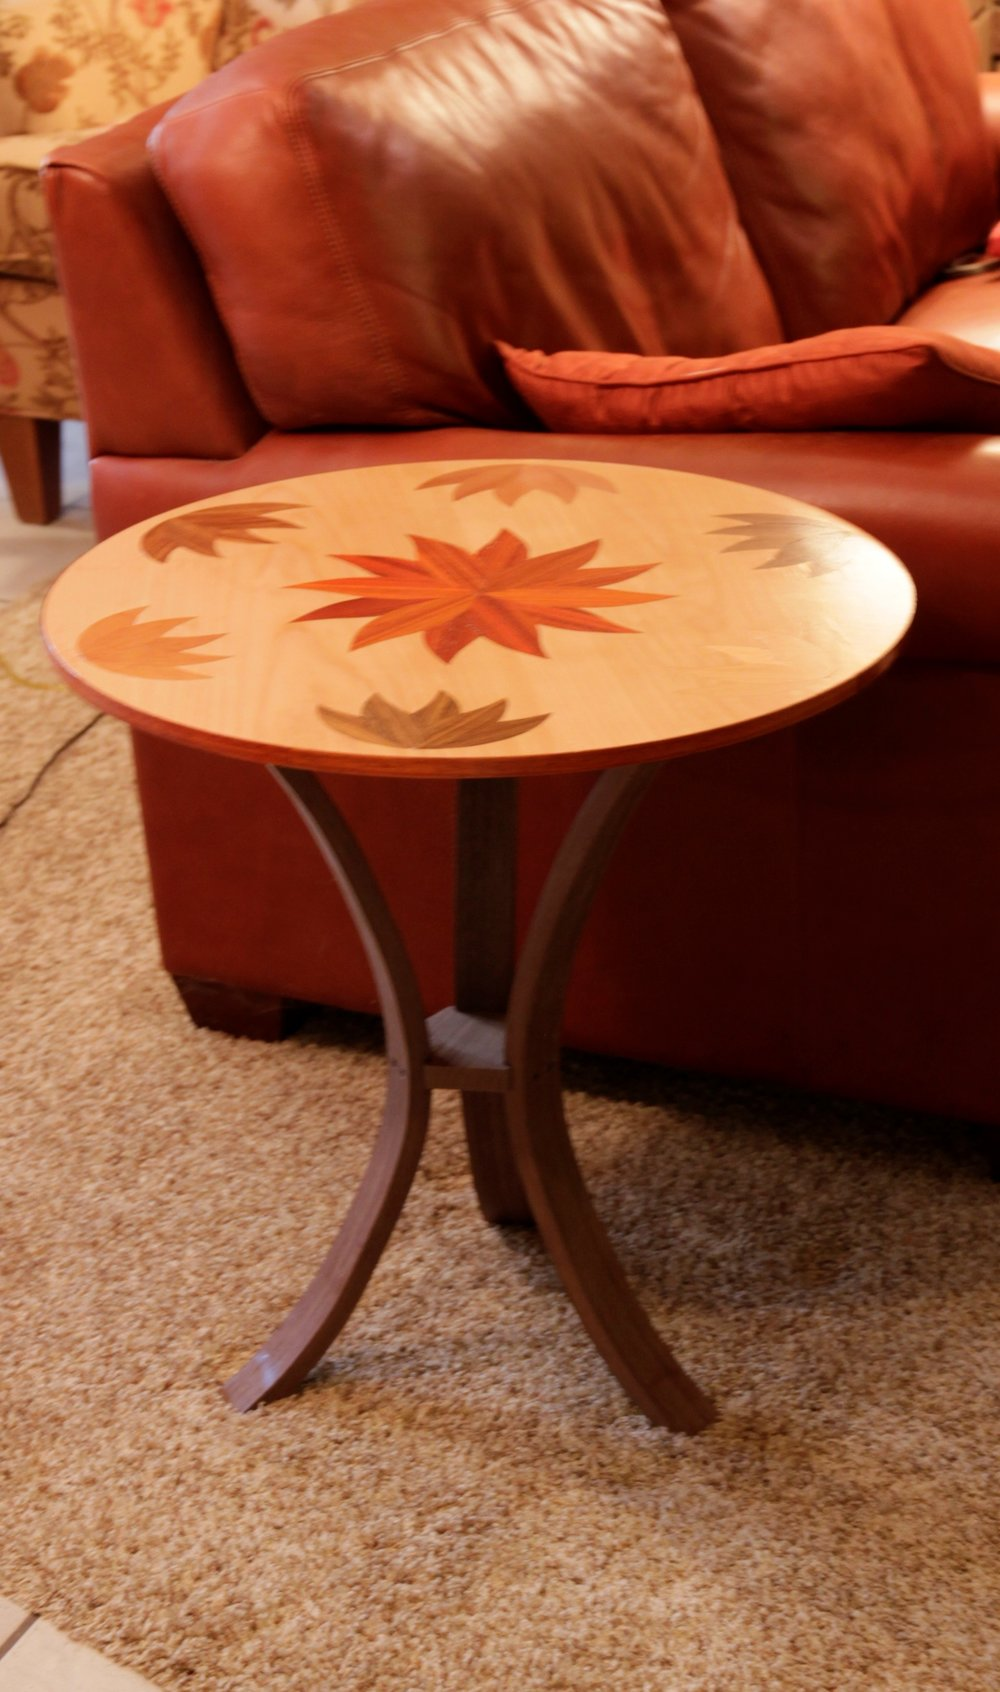 And makes a nice sized end table! -